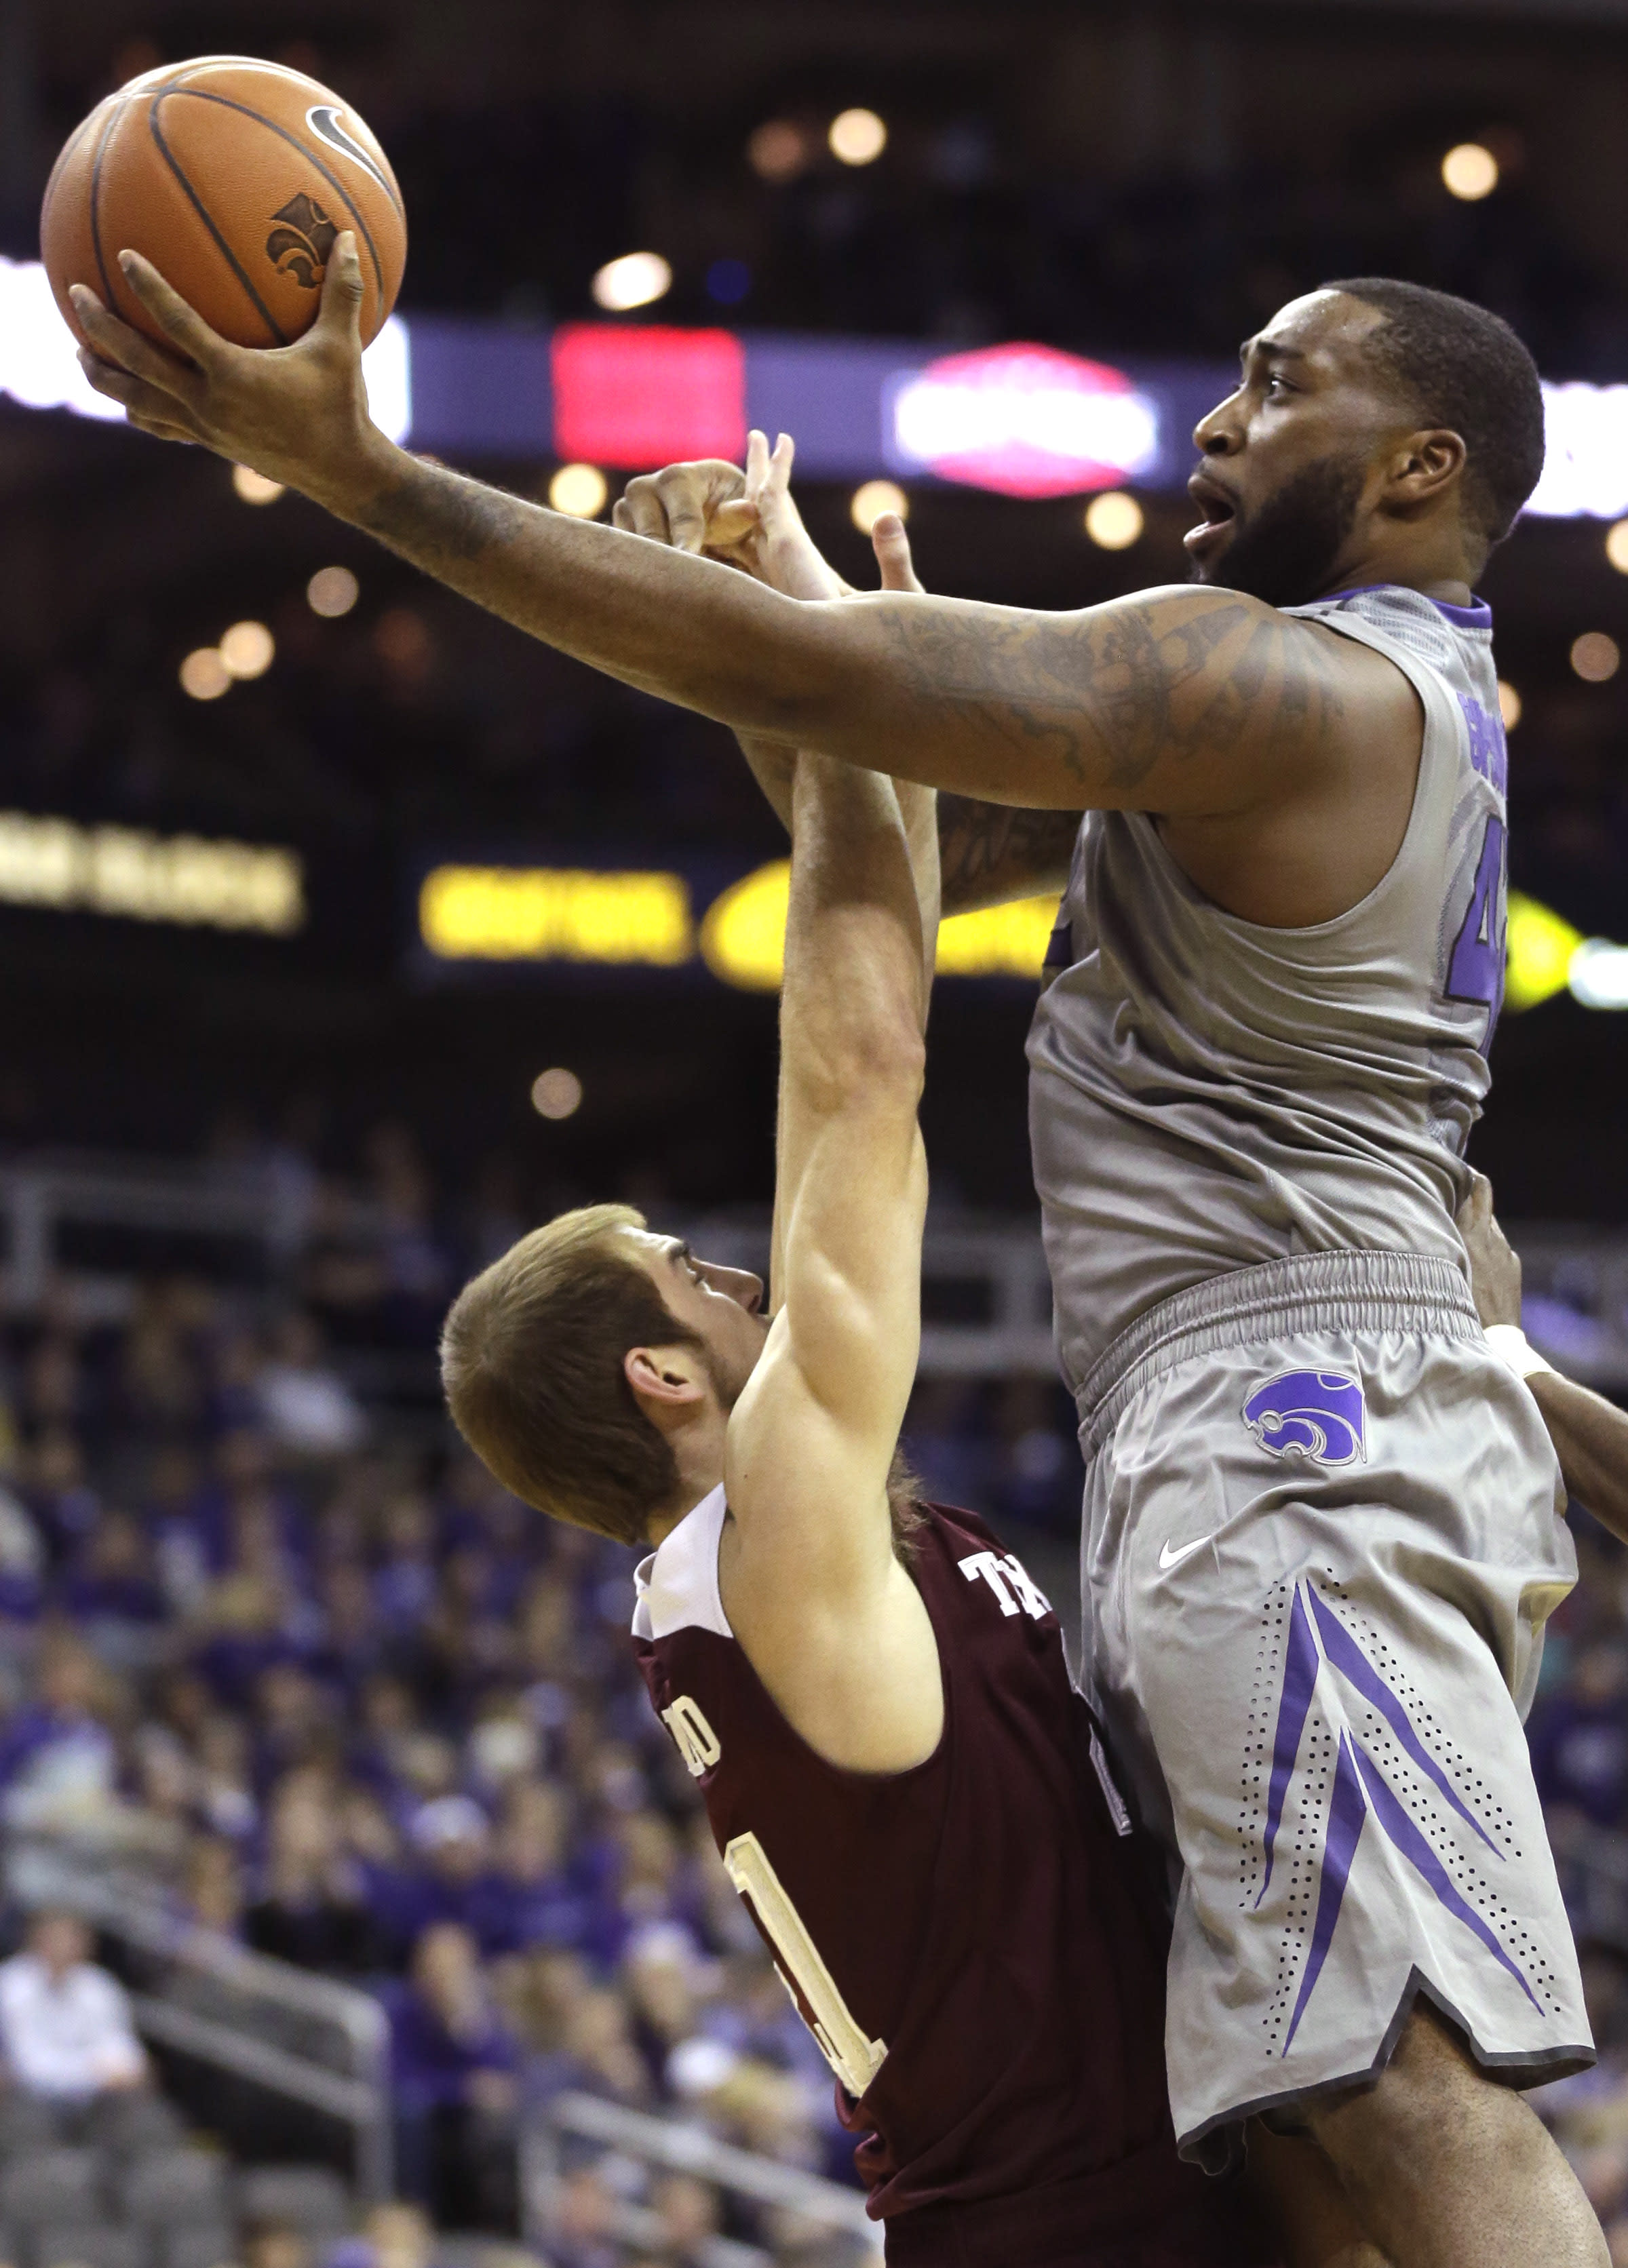 Williams scores 17 in K-State's 71-64 win over Texas A&M